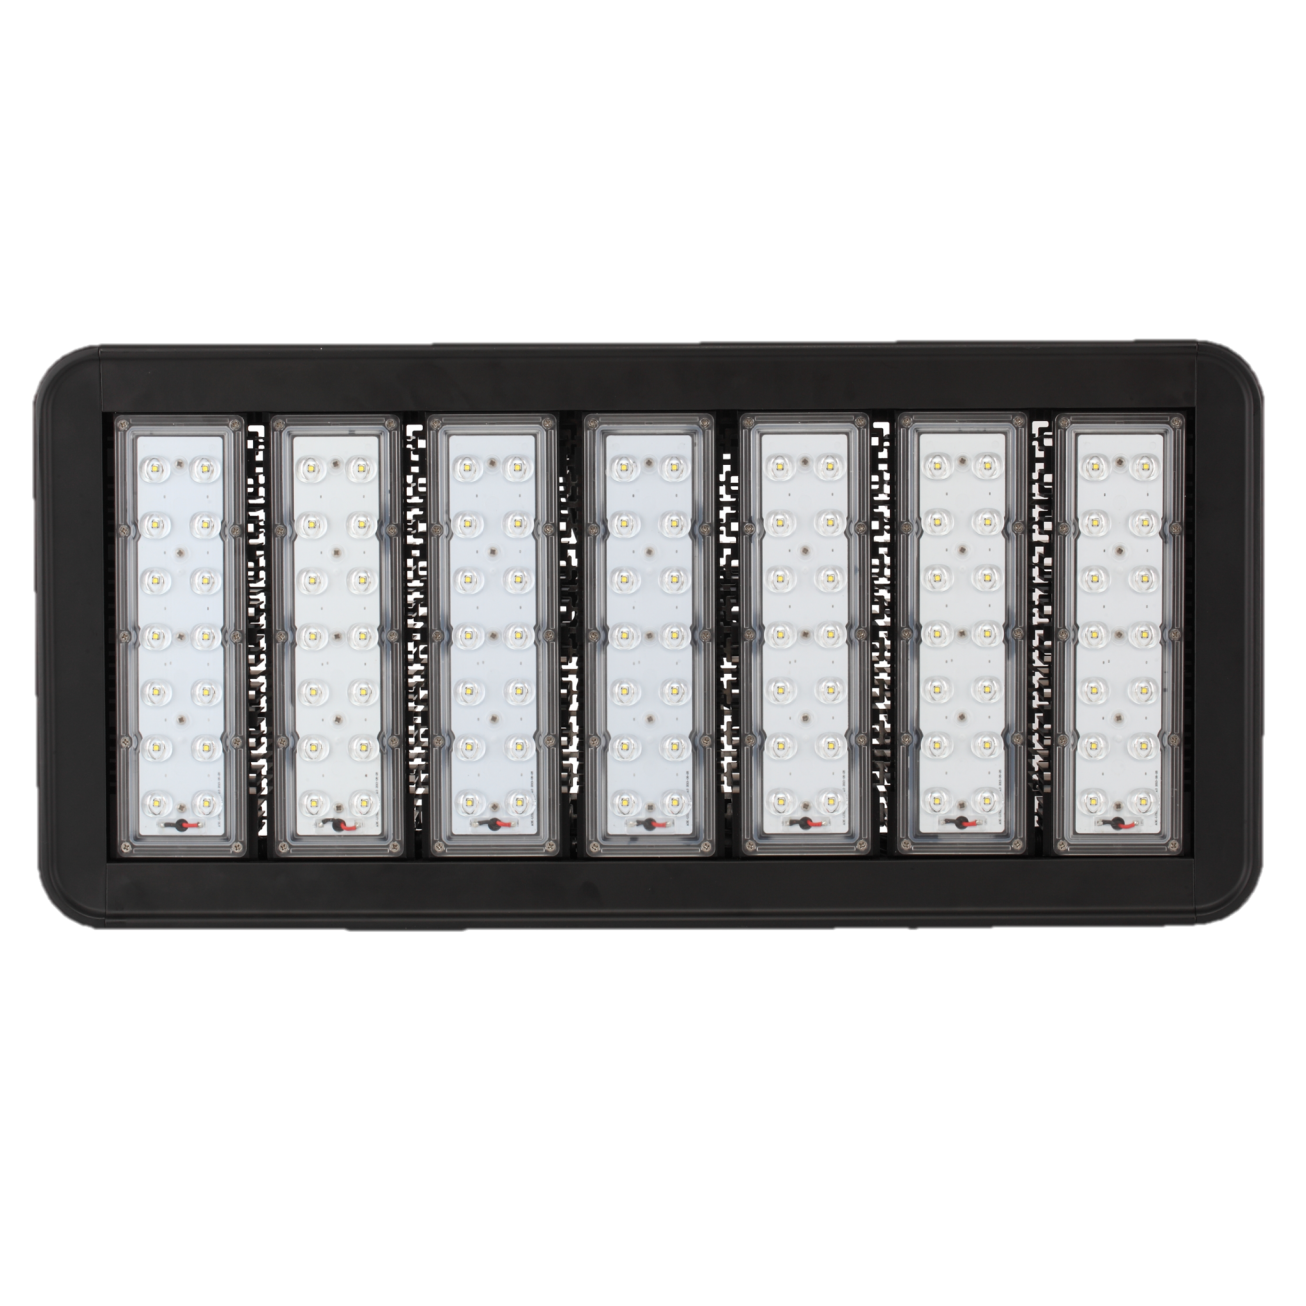 360w led canopy light fixture 360w led canopy light fixture 10 year warranty arubaitofo Images